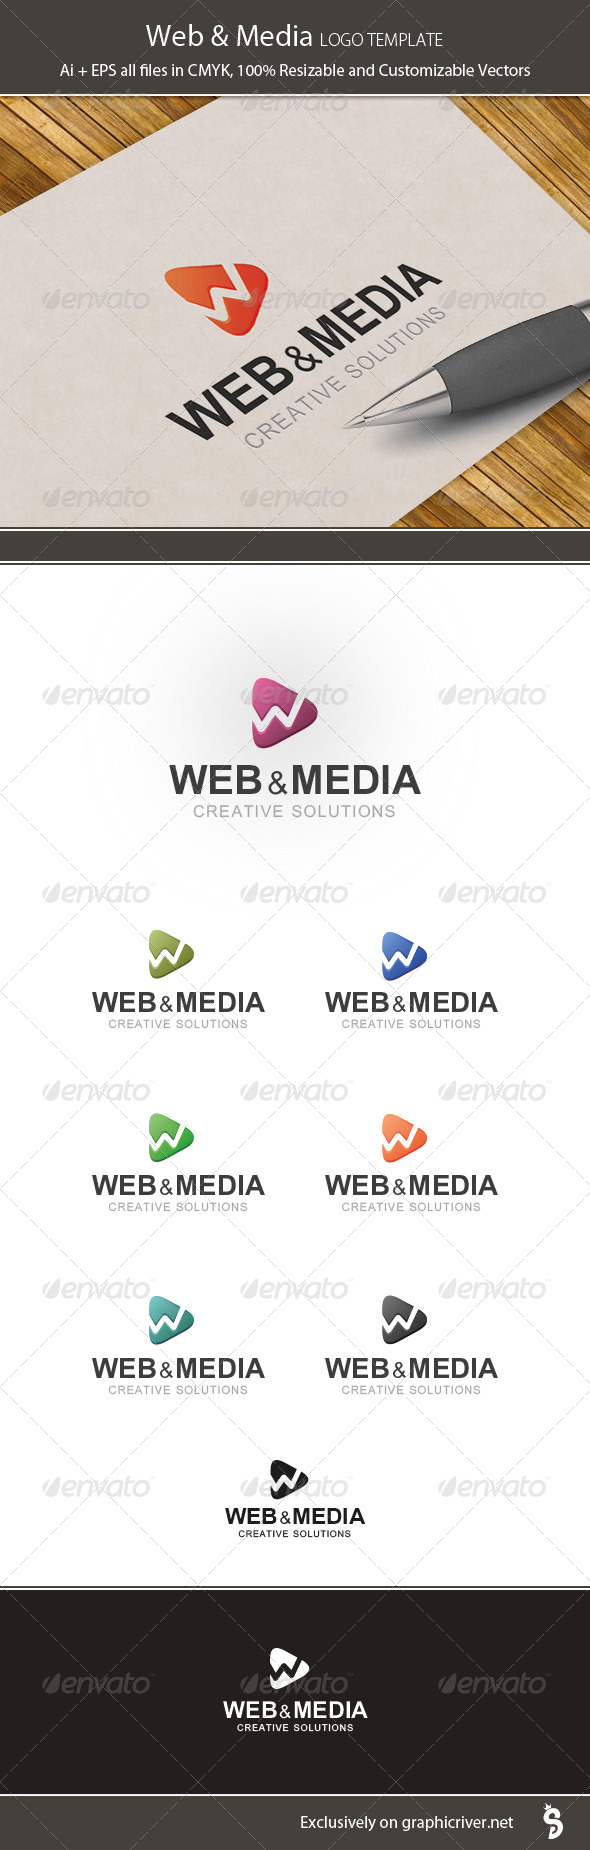 GraphicRiver Web & Media Logo Template 6241397